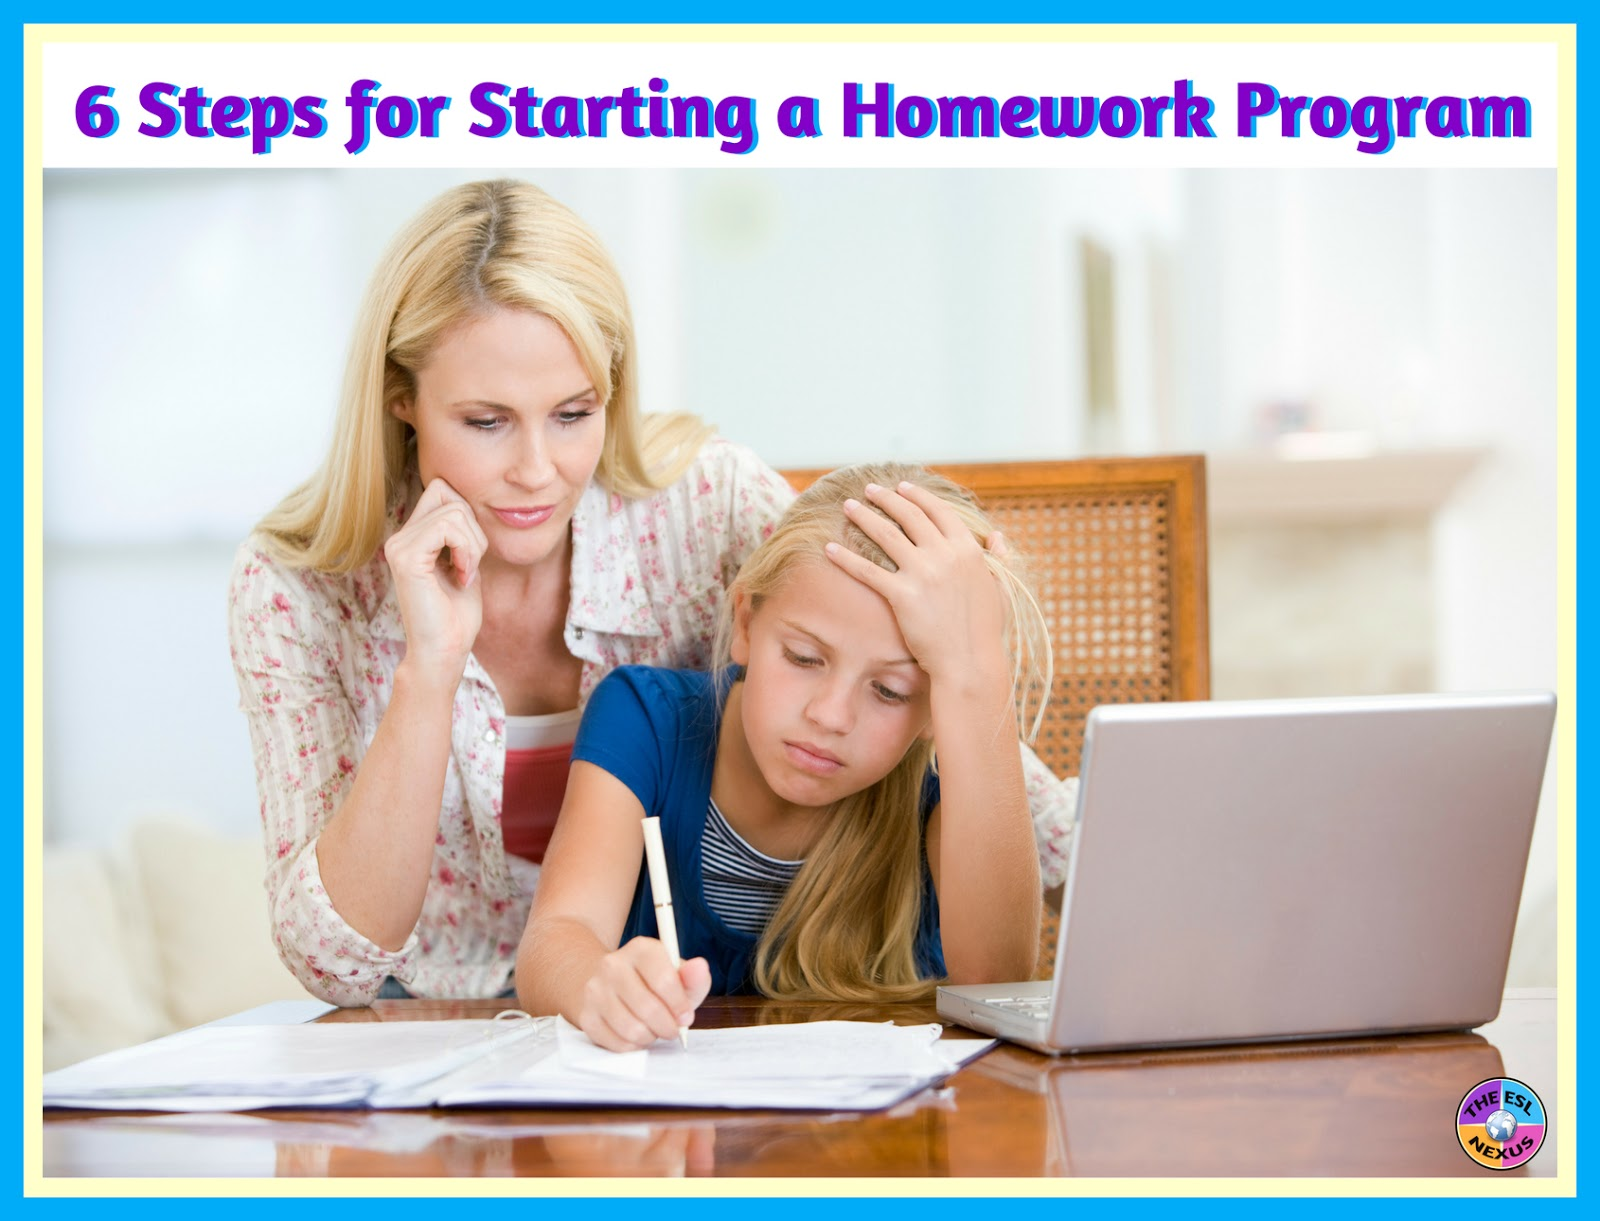 6 steps for starting a homework program.